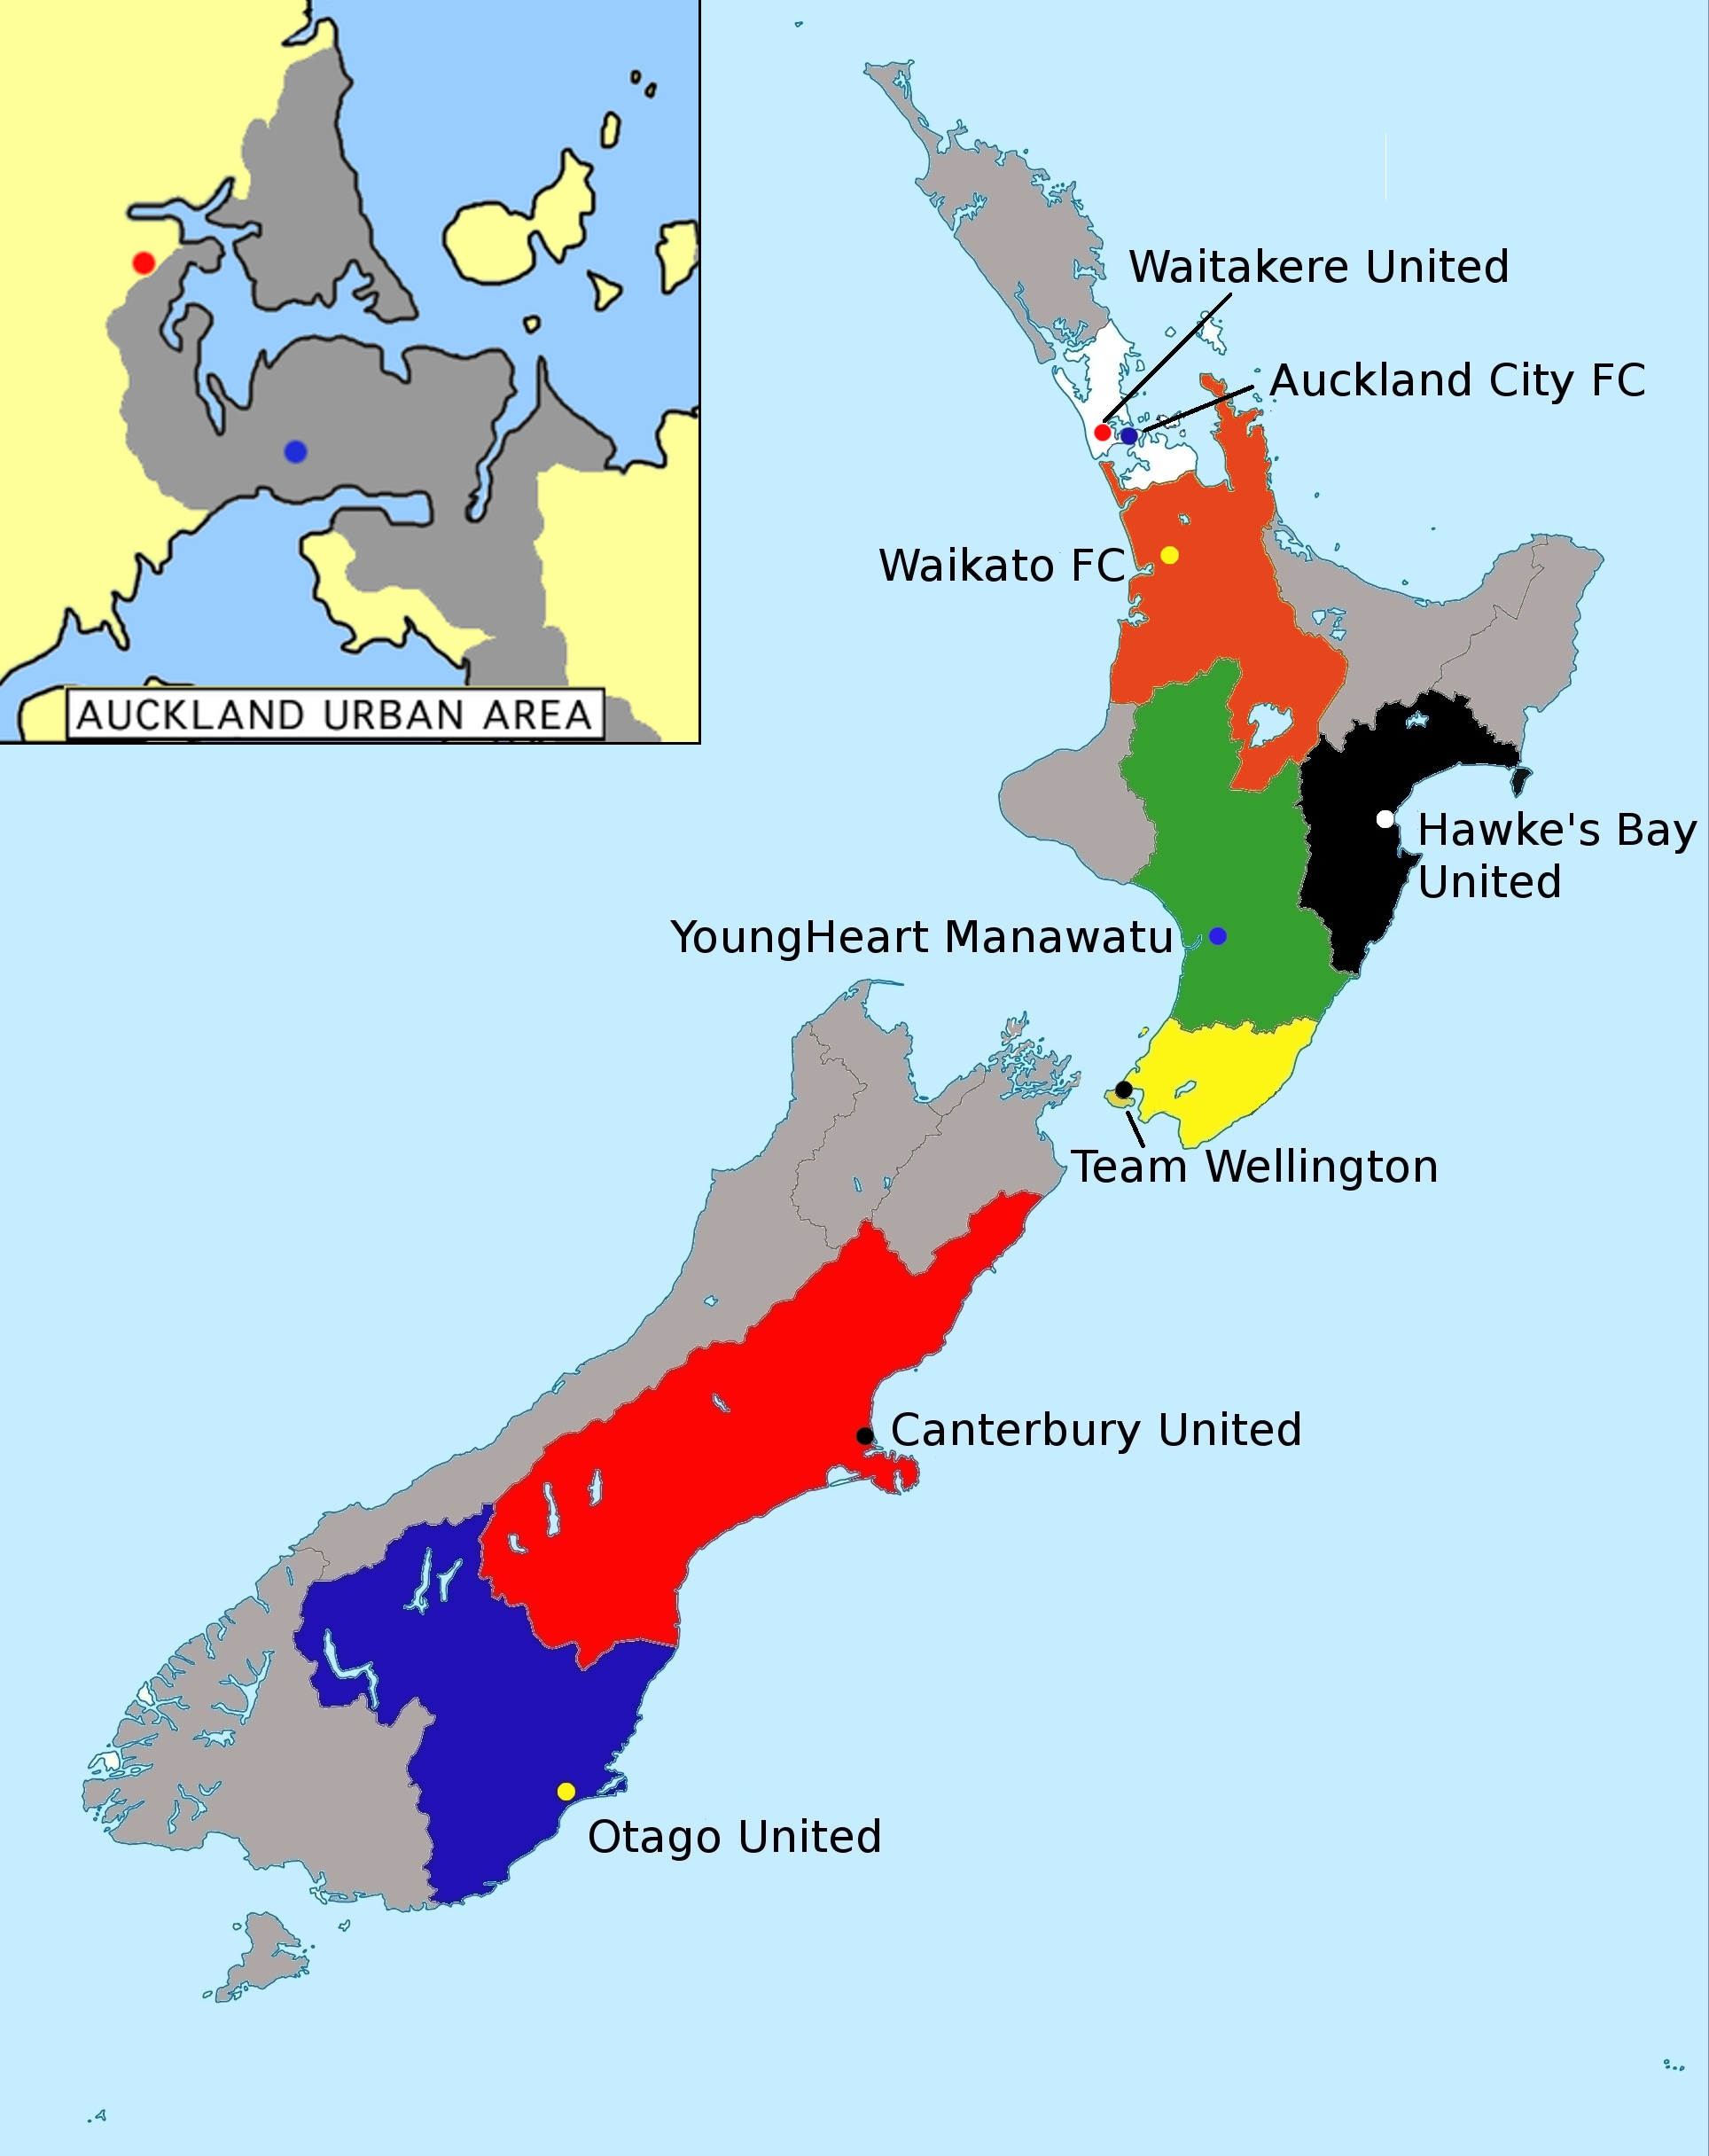 New Zealand What Continent Located Political Location Map Of New - Where is new zealand located